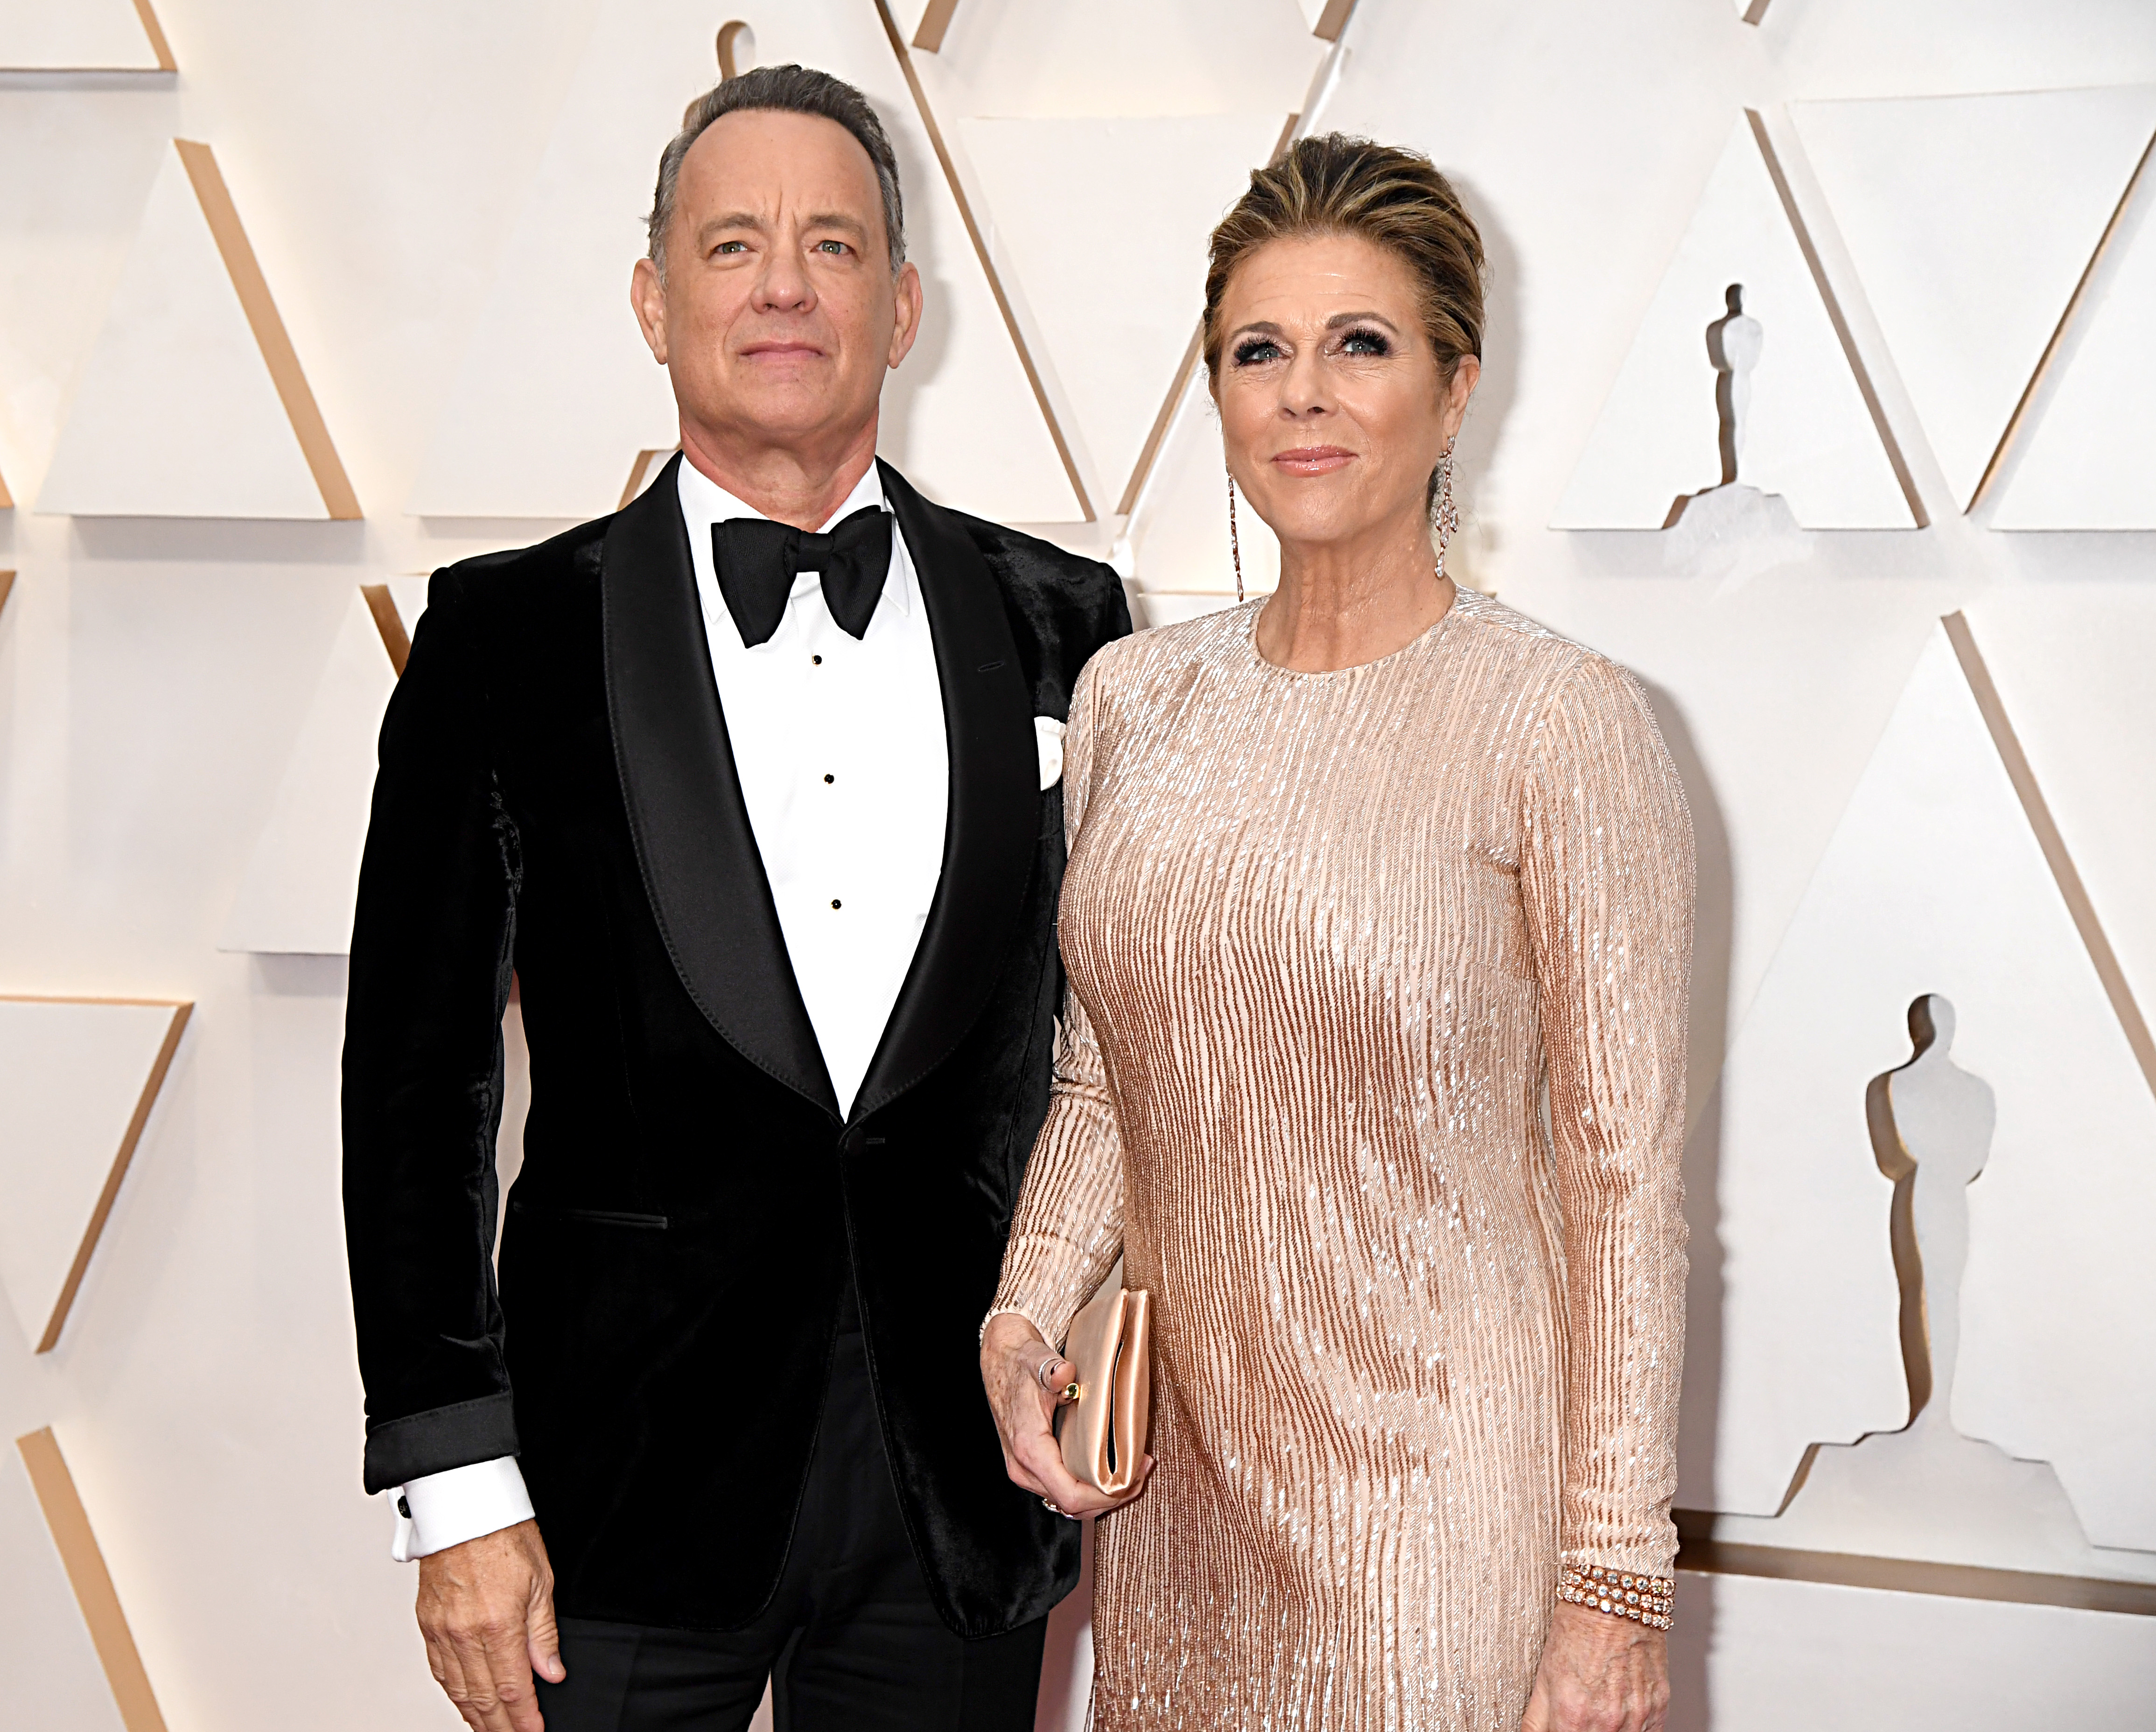 Tom Hanks and Rita Wilson attend the 92nd Annual Academy Awards at Hollywood and Highland on February 09, 2020 in Hollywood, California. (Photo by Jeff Kravitz/FilmMagic)